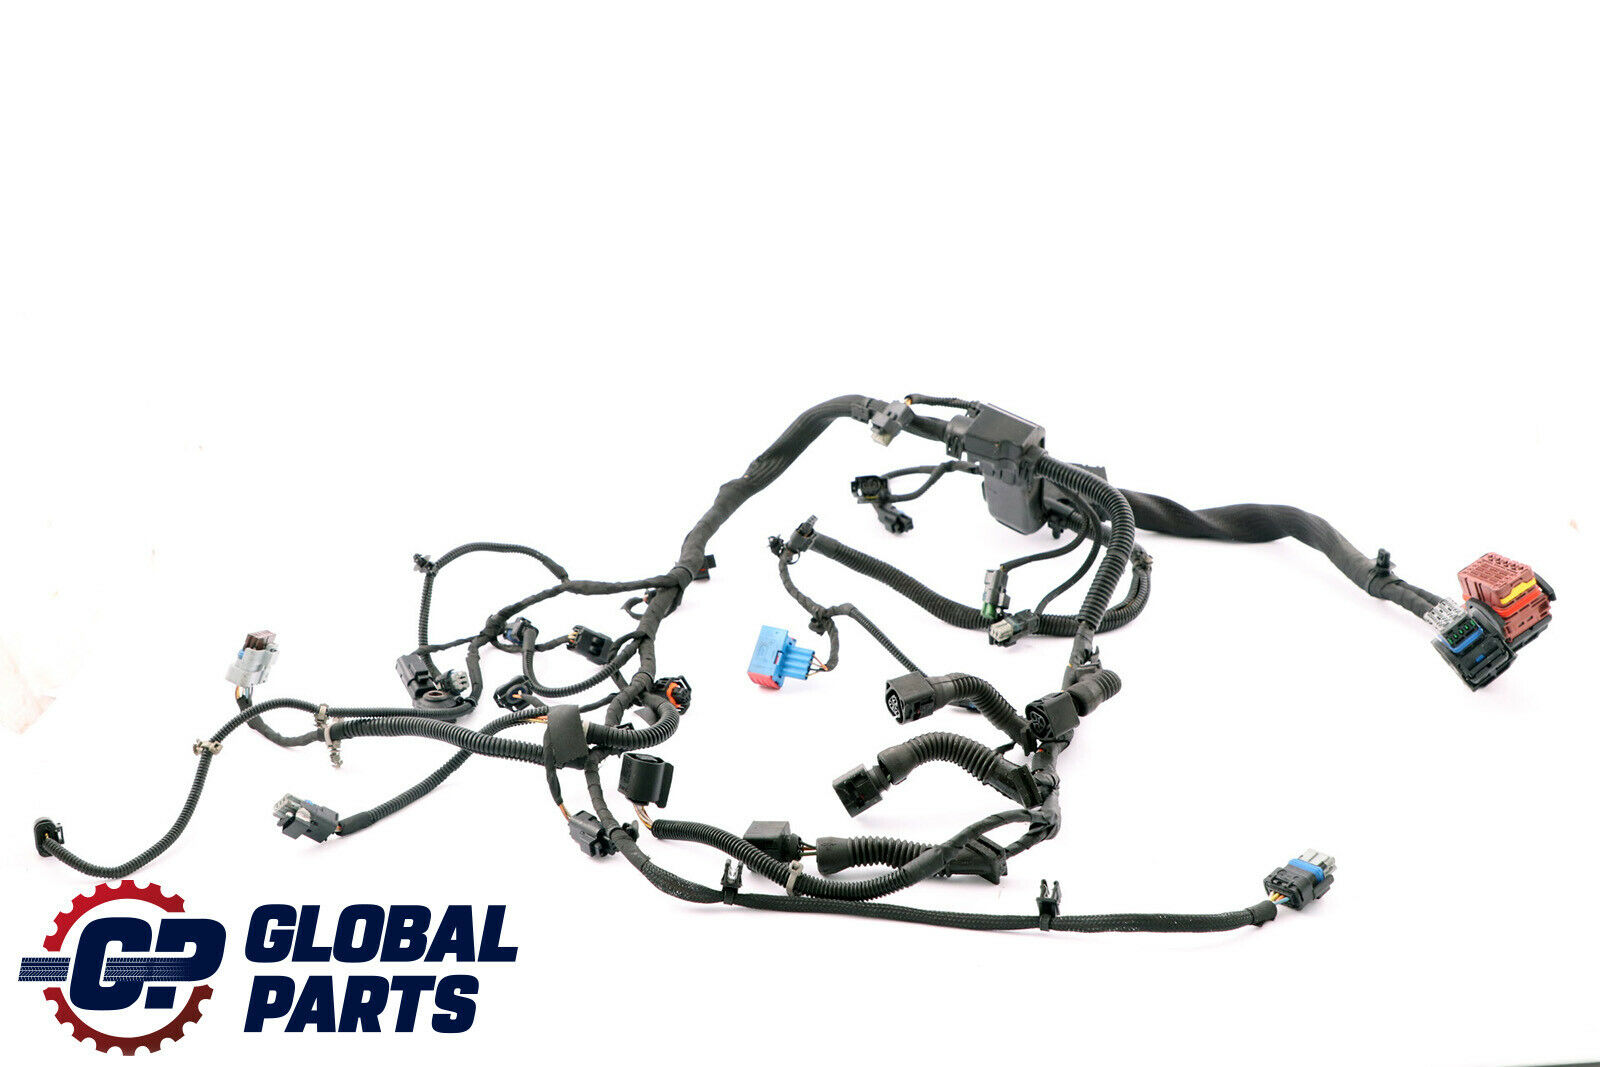 Bmw Mini Cooper S R55 R56 Engine Wiring Loom Harness Injection Valve Ignition 1 Of 10only 2 Available